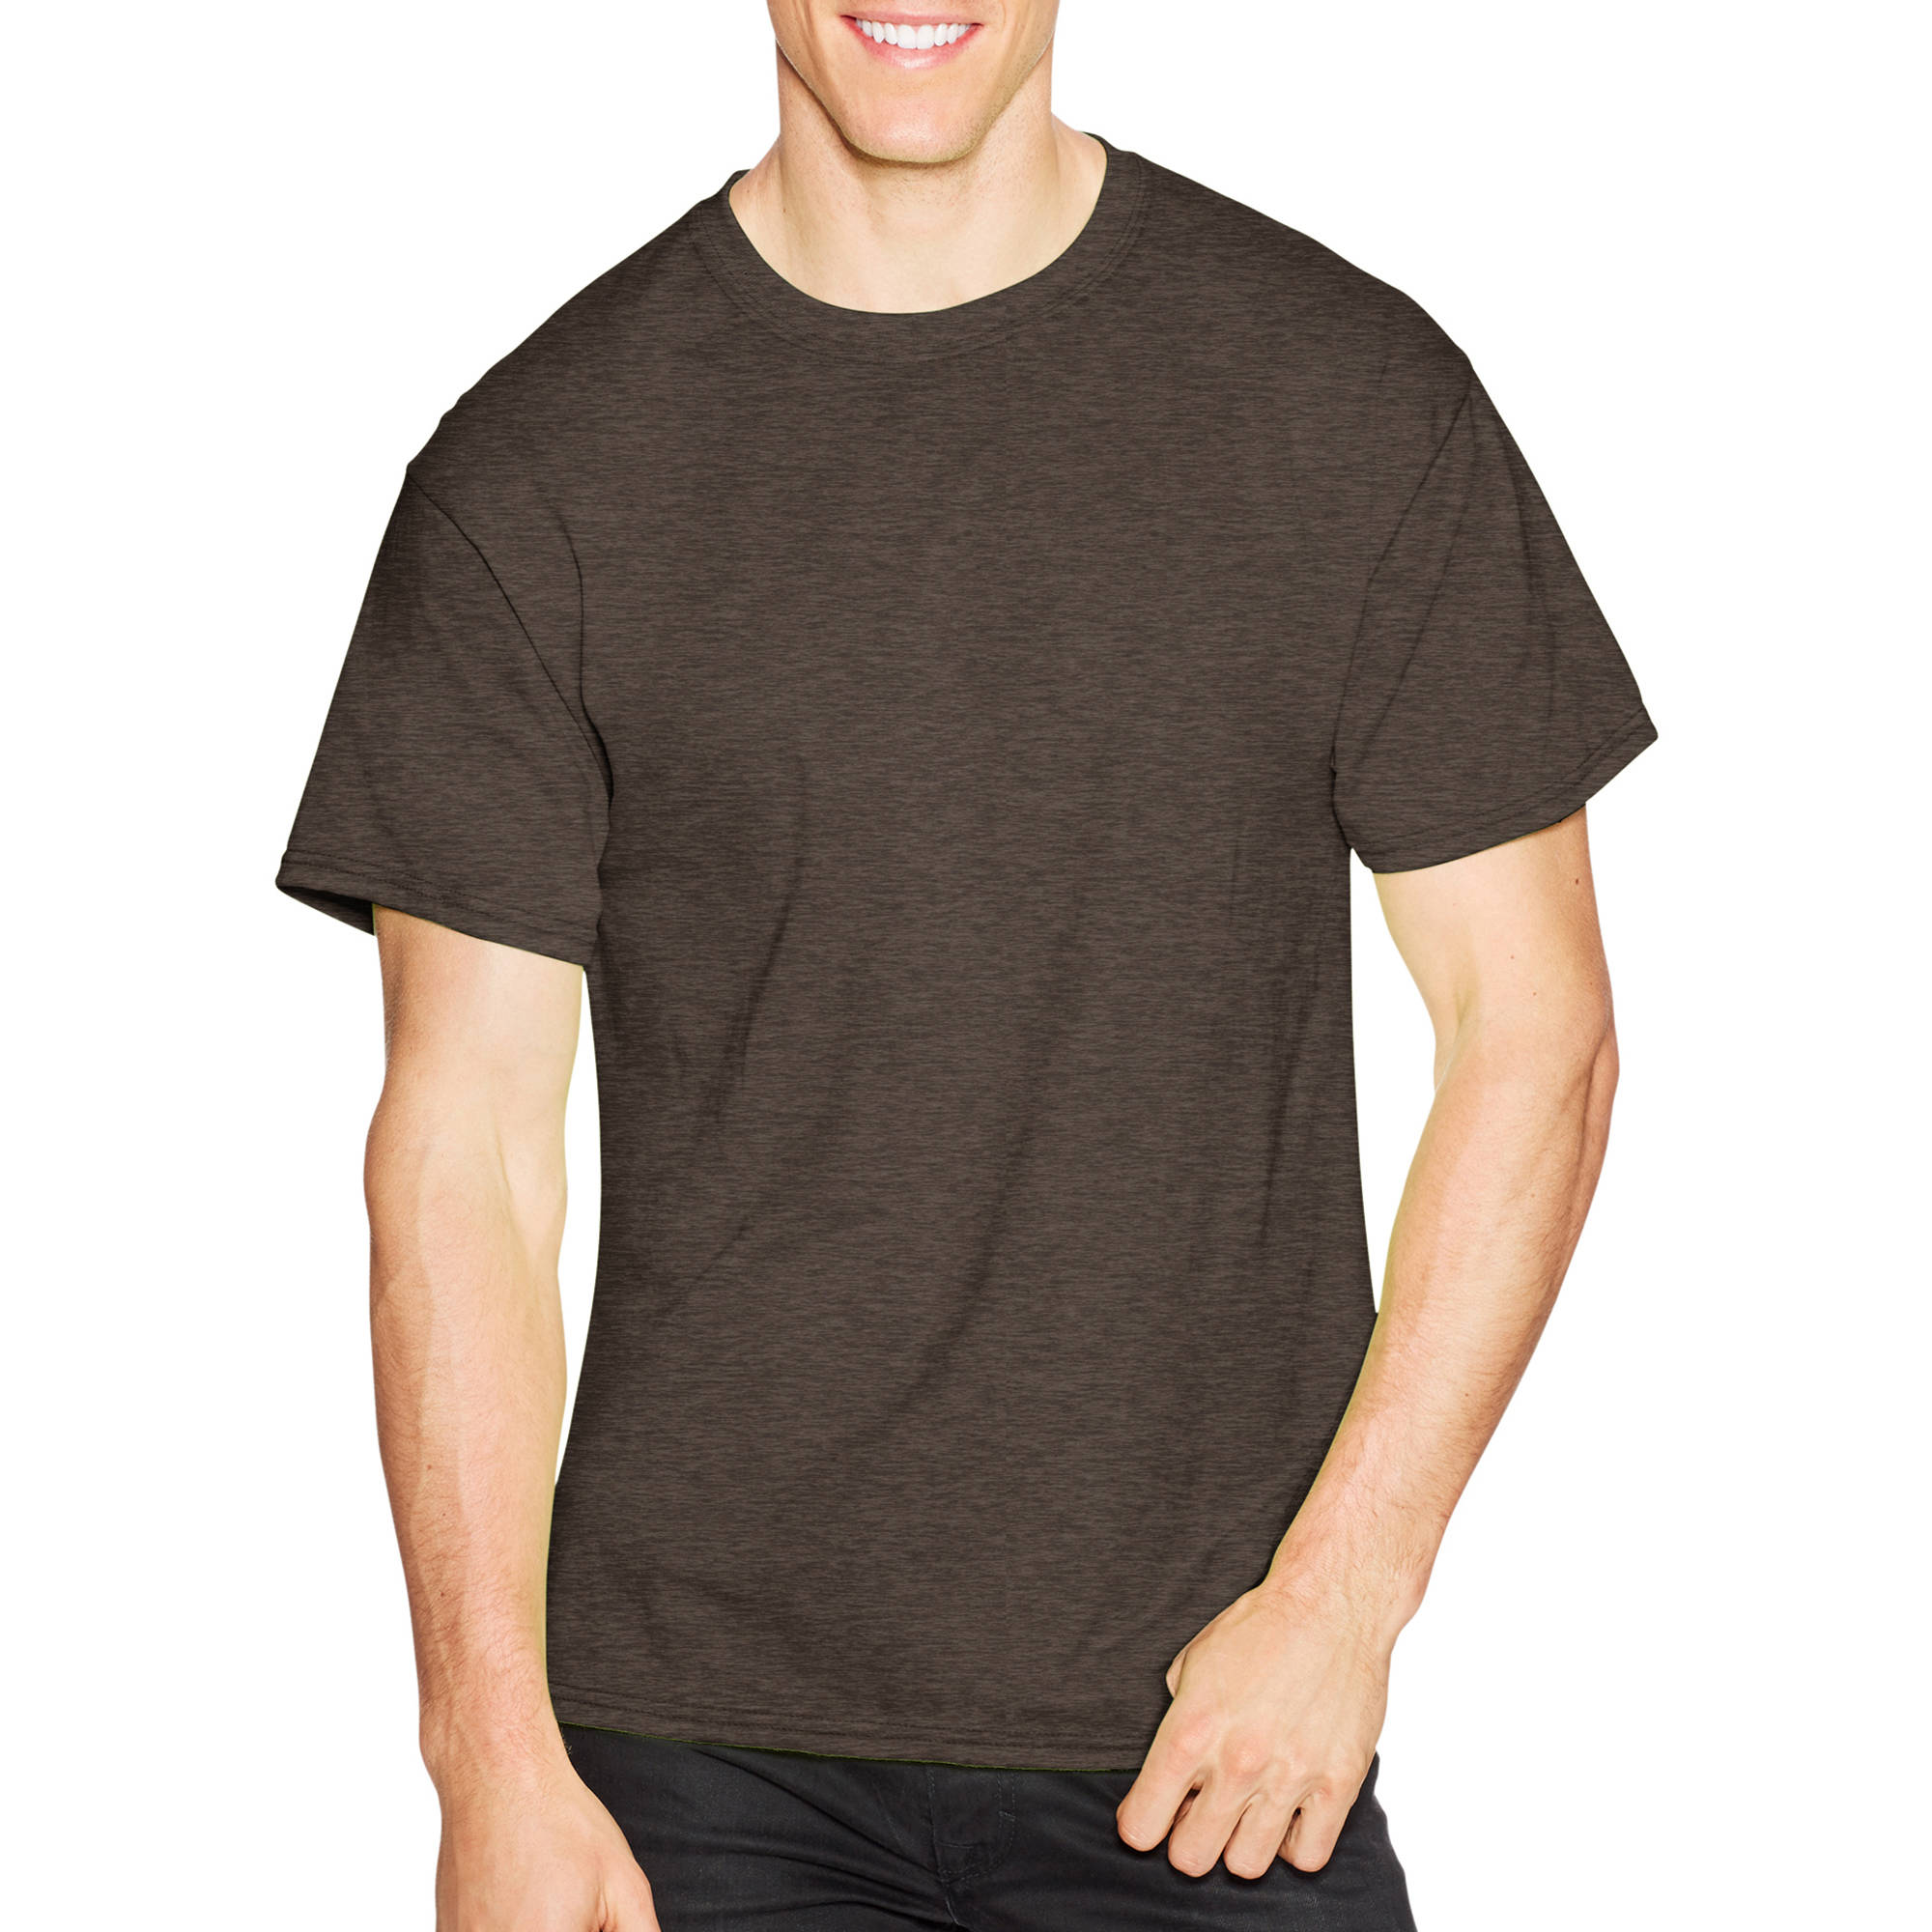 Hanes Big Men's Short Sleeve EcoSmart T-shirt